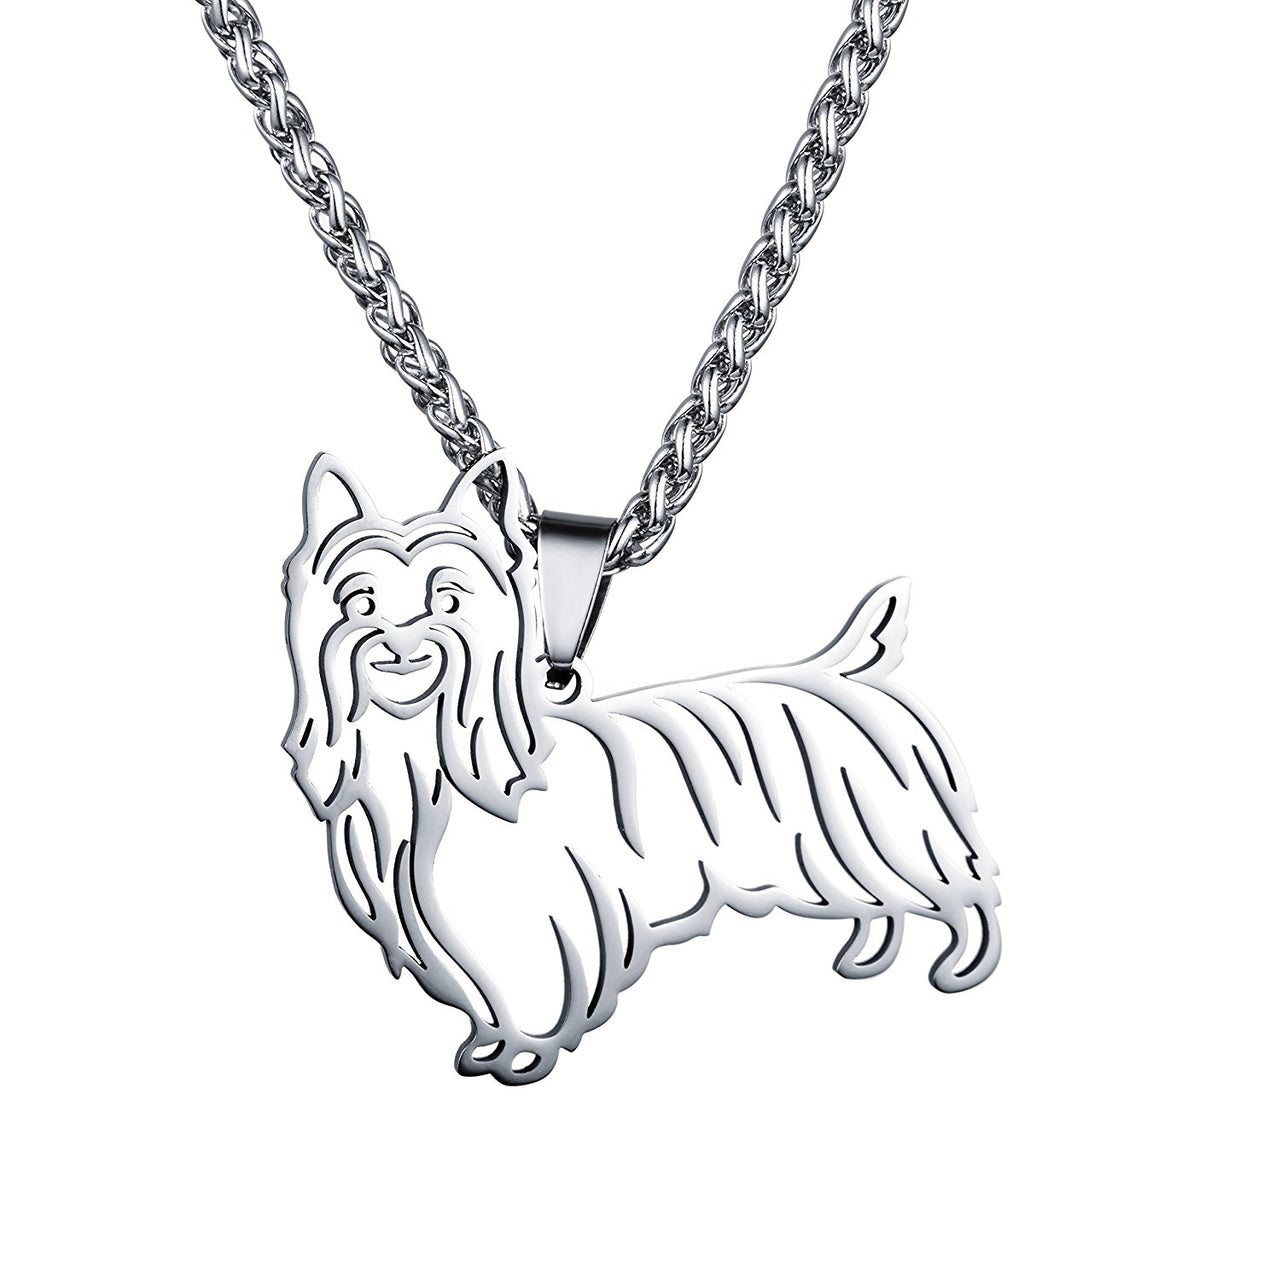 Stainless Steel Australian Silky Terrier Outline Pet Dog Tag Breed Collar Charm Pendant Necklace